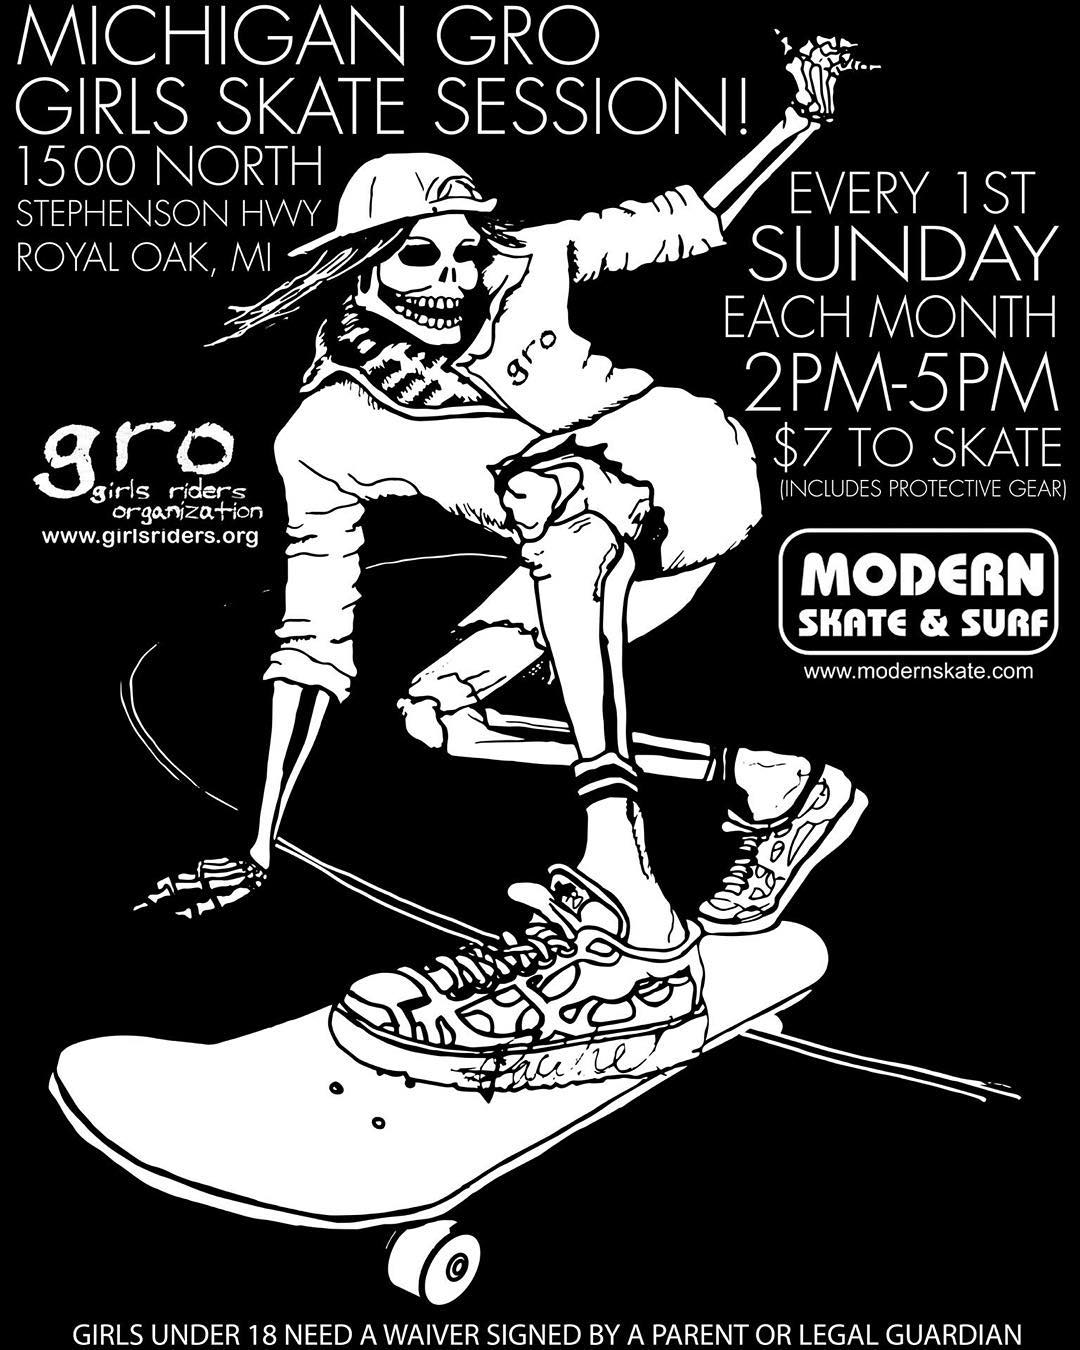 Sesh tomorrow @modernskate with @michigangrocrew